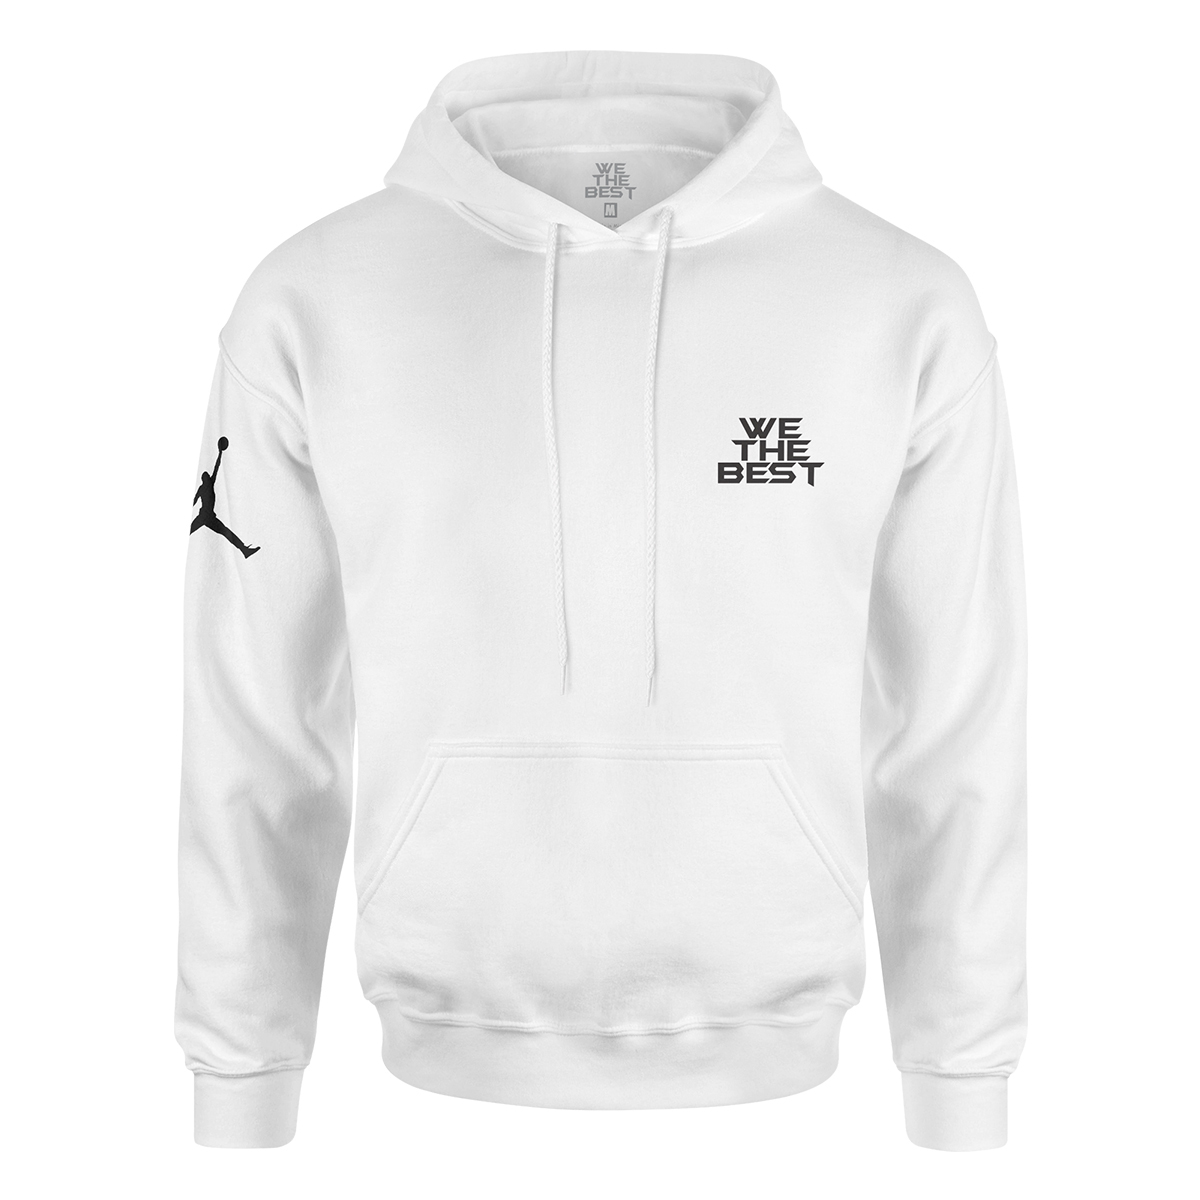 DJ Khaled x Jordan Leather Sneakers Hoodie - White + Father of Asahd Album Download